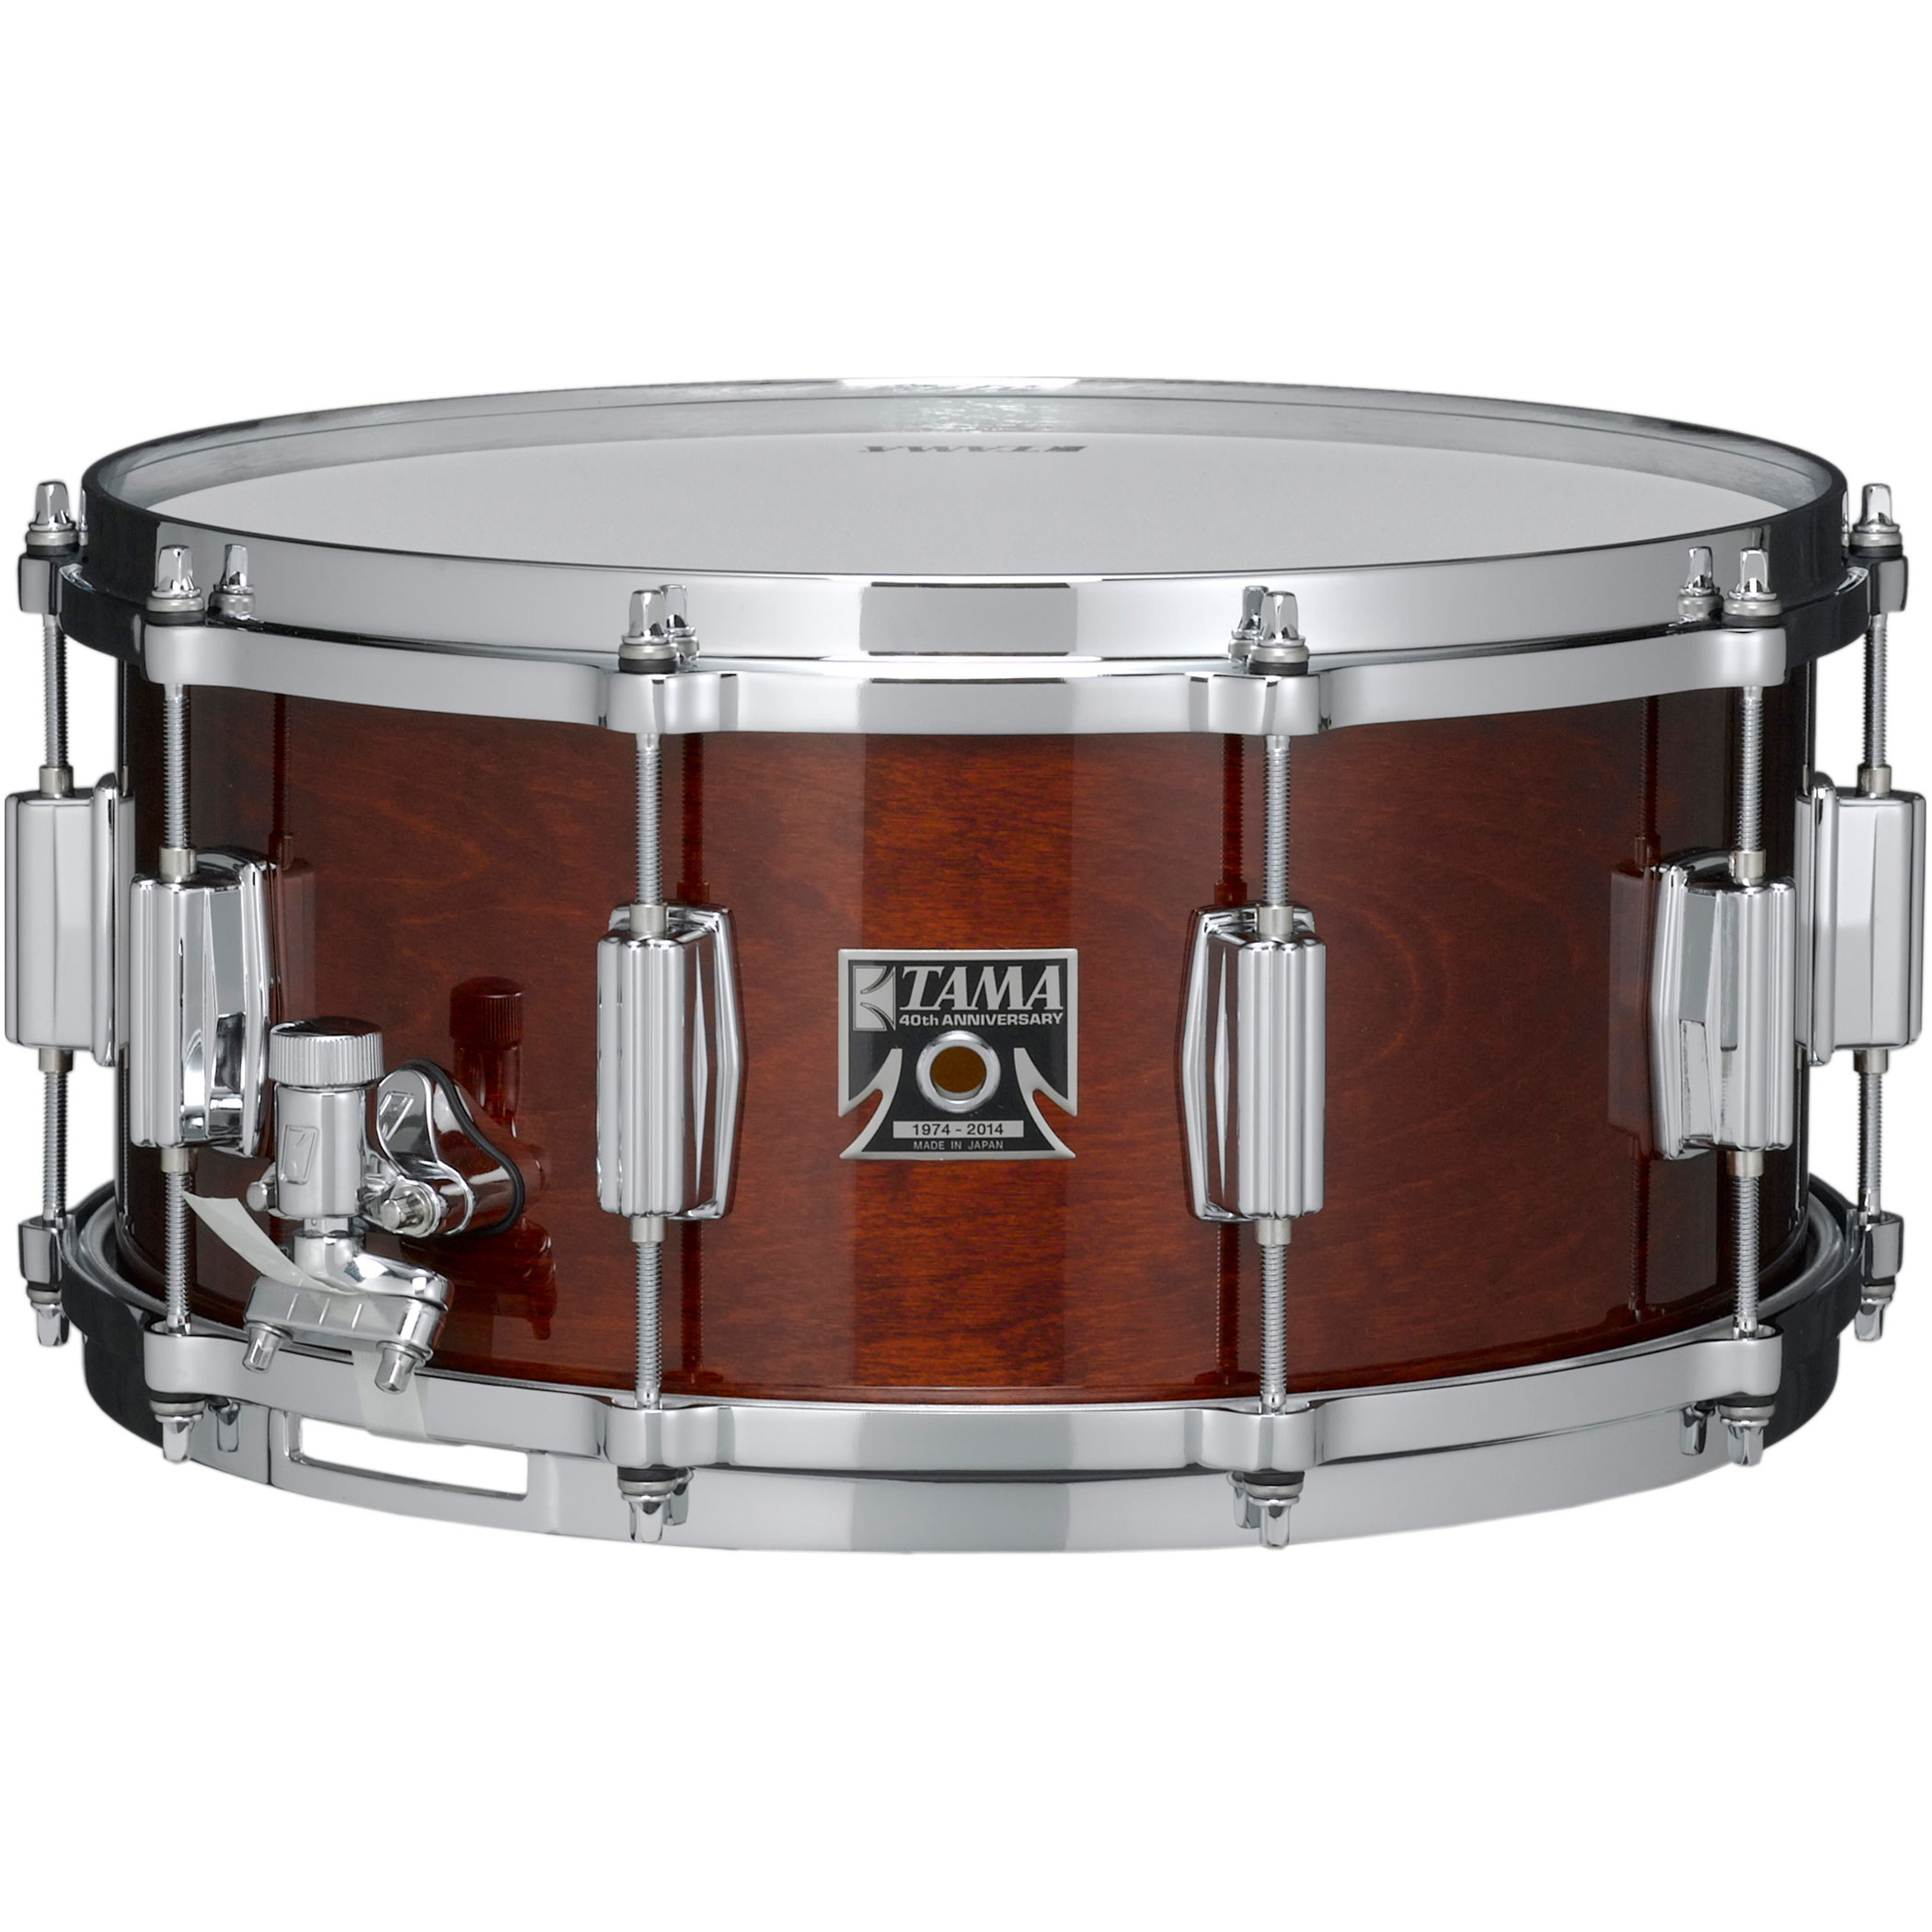 "Tama 14"" x 6.5"" 40th Anniversary Superstar Reissue Snare Drum in Super Mahogany"